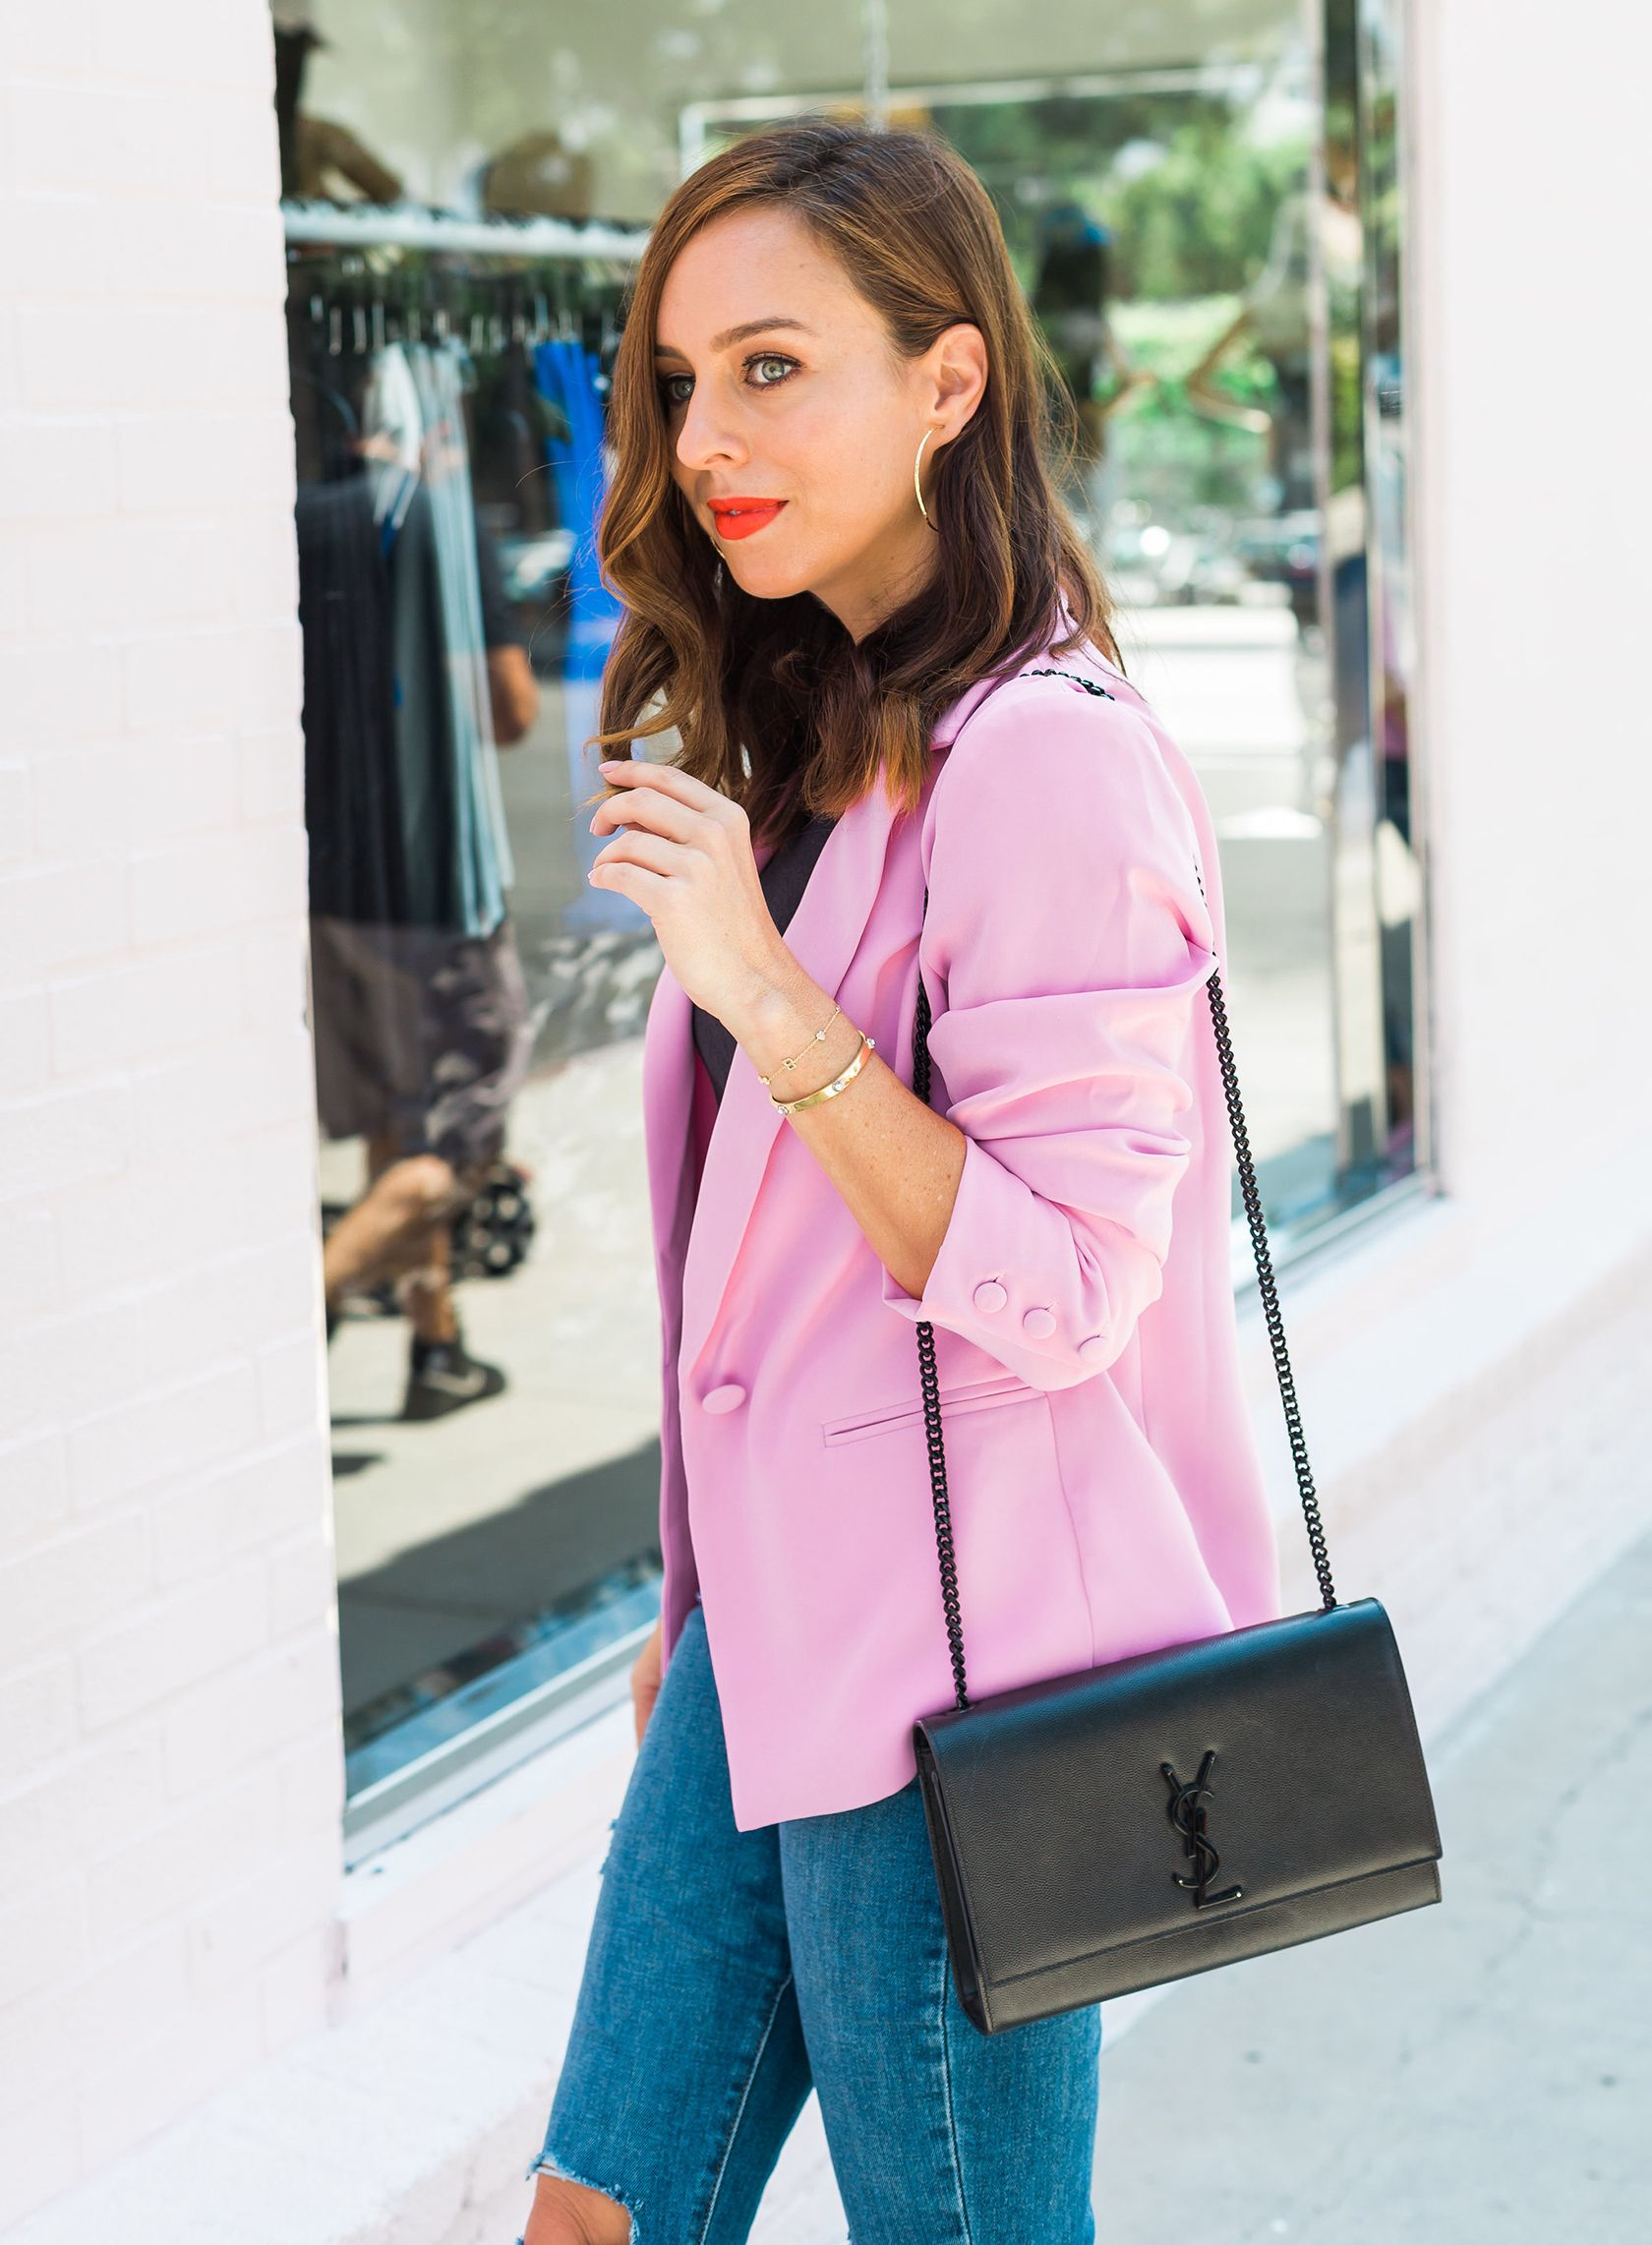 4b644b736b4f Sydne Style wears lovers and friends pink blazer for fall outfit ideas with  ysl medium kate bag  blazers  pink  jeans  redlips  sydnesummer